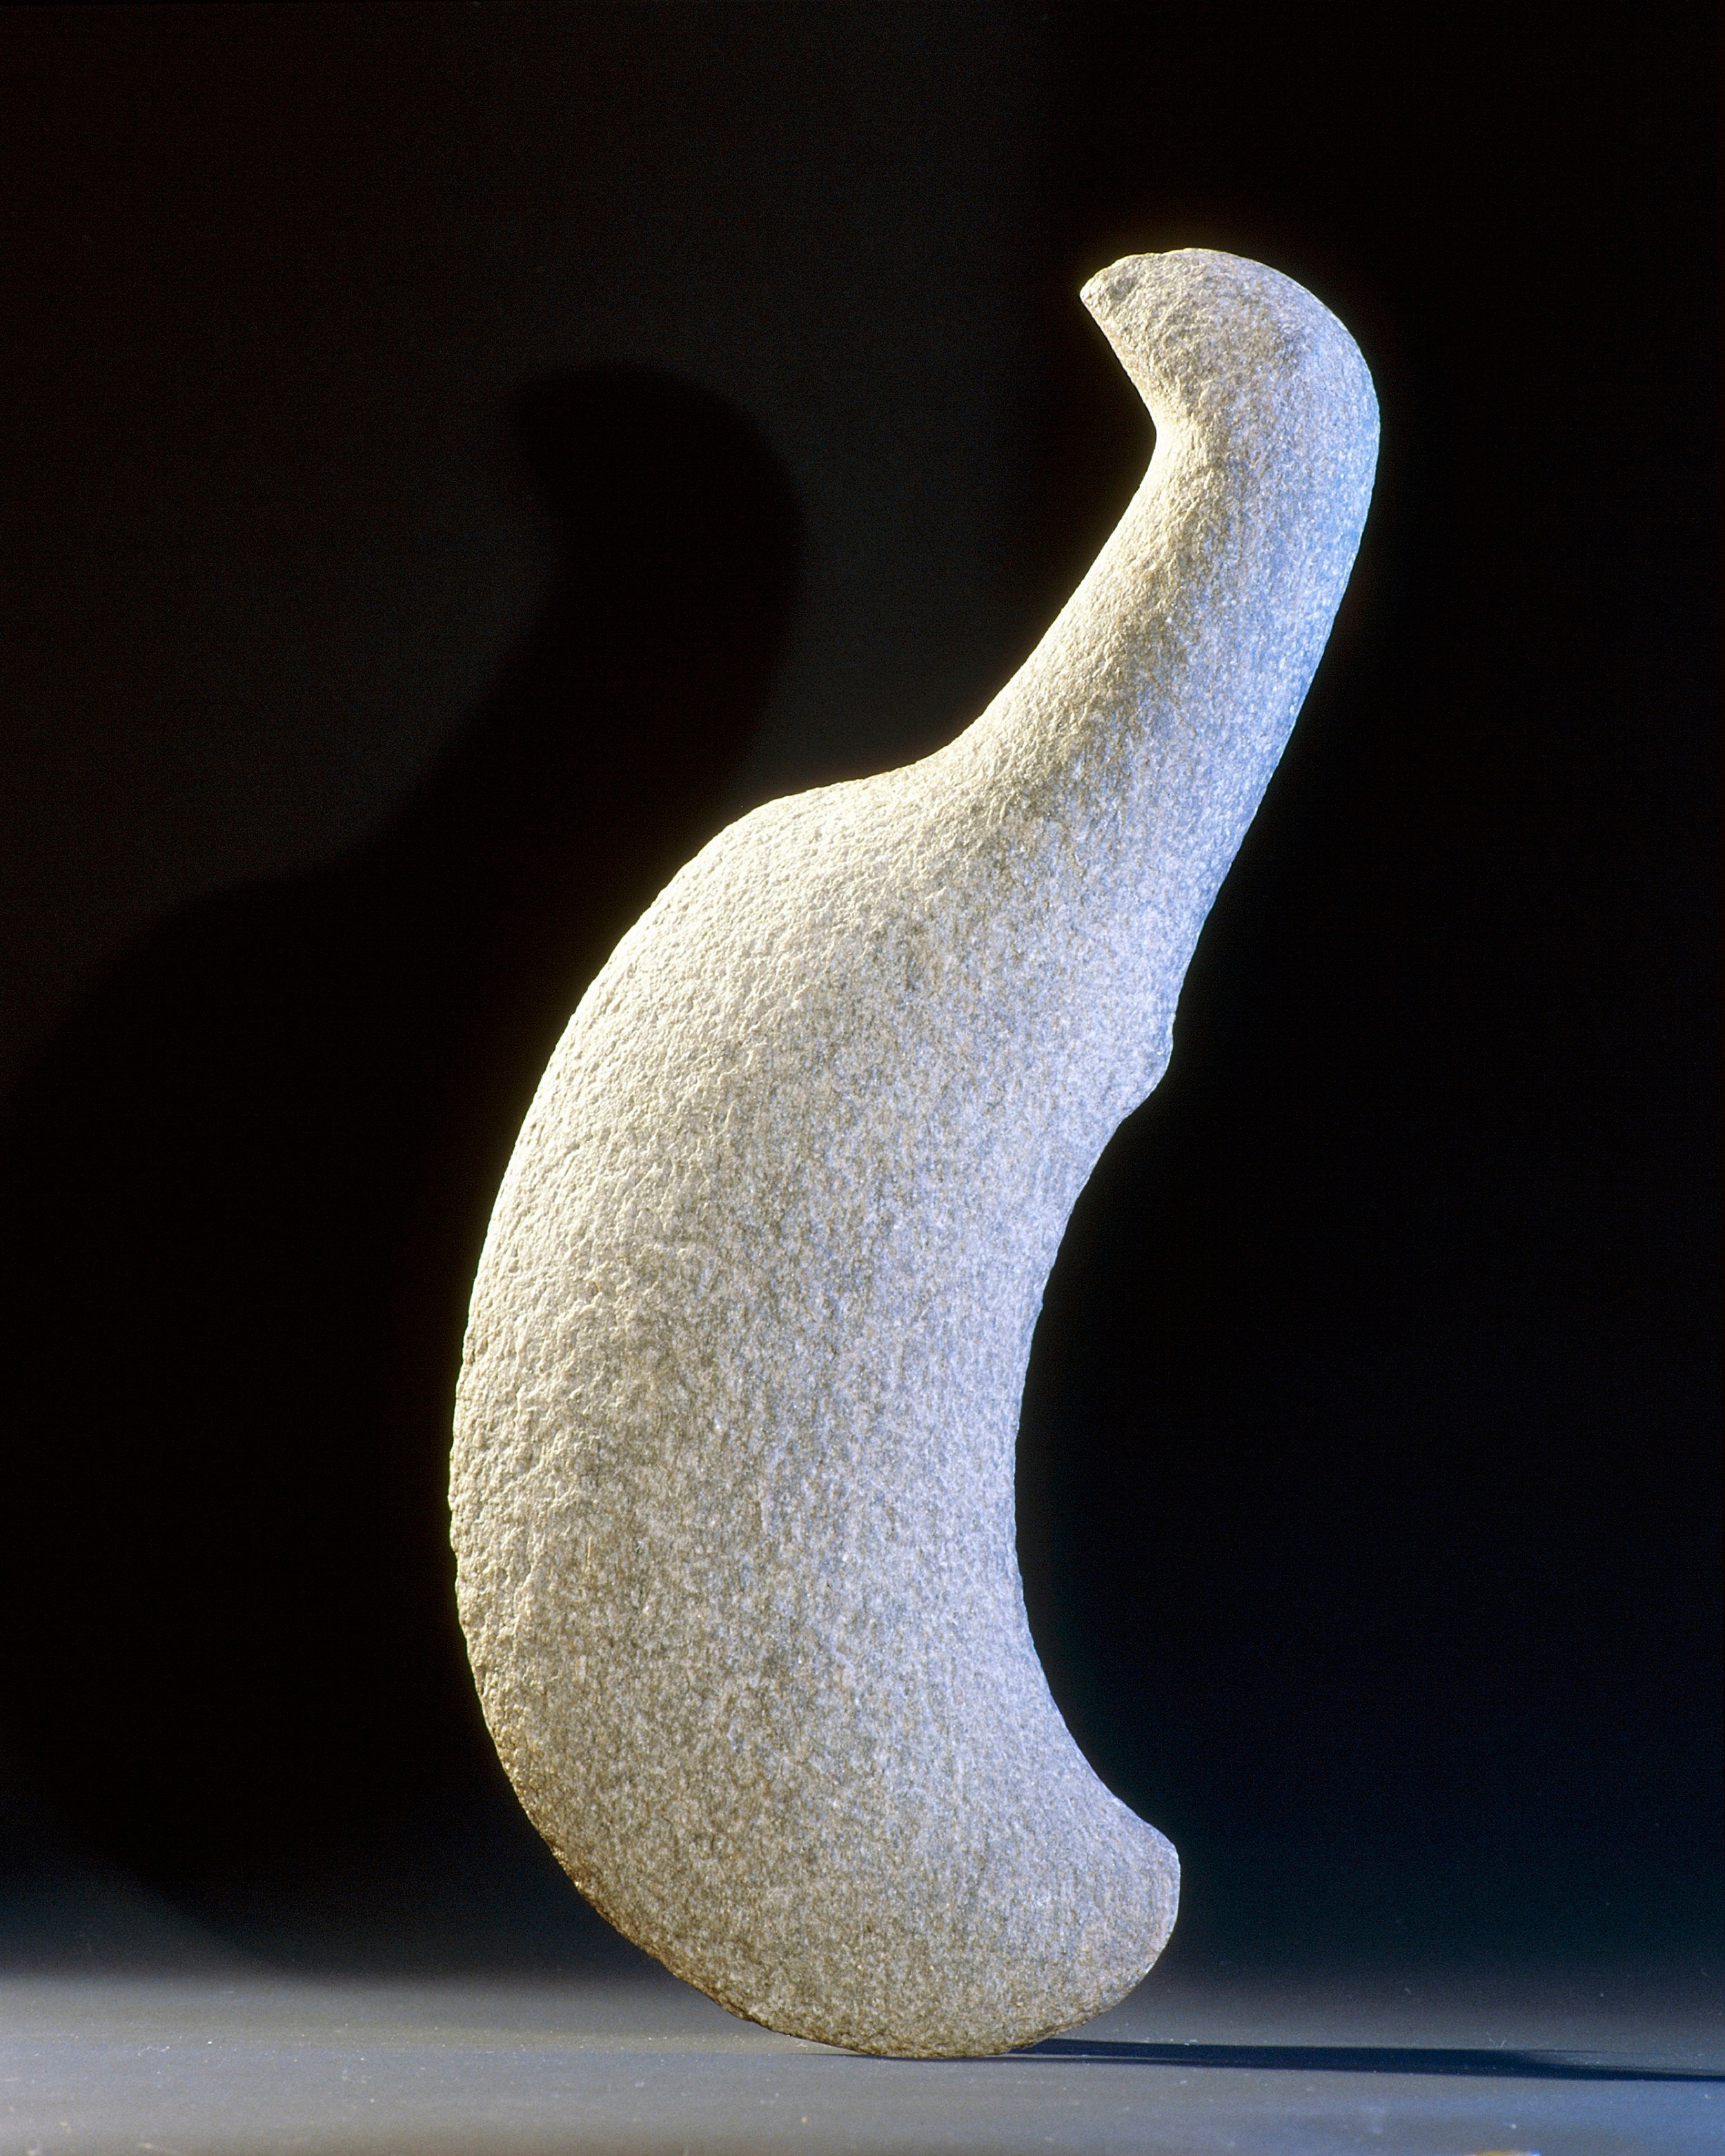 A bird-shaped okewa or stone club from the Chatham Islands which lie 500 miles to the east of New Zealand's South Island. The Moriori people of the Chathams retained attributes of archaic Maori culture long after it had disappeared from the mainland.   Inv. #: 55404996 © Werner Forman Archive/ National Museum of New Zealand, Wellington